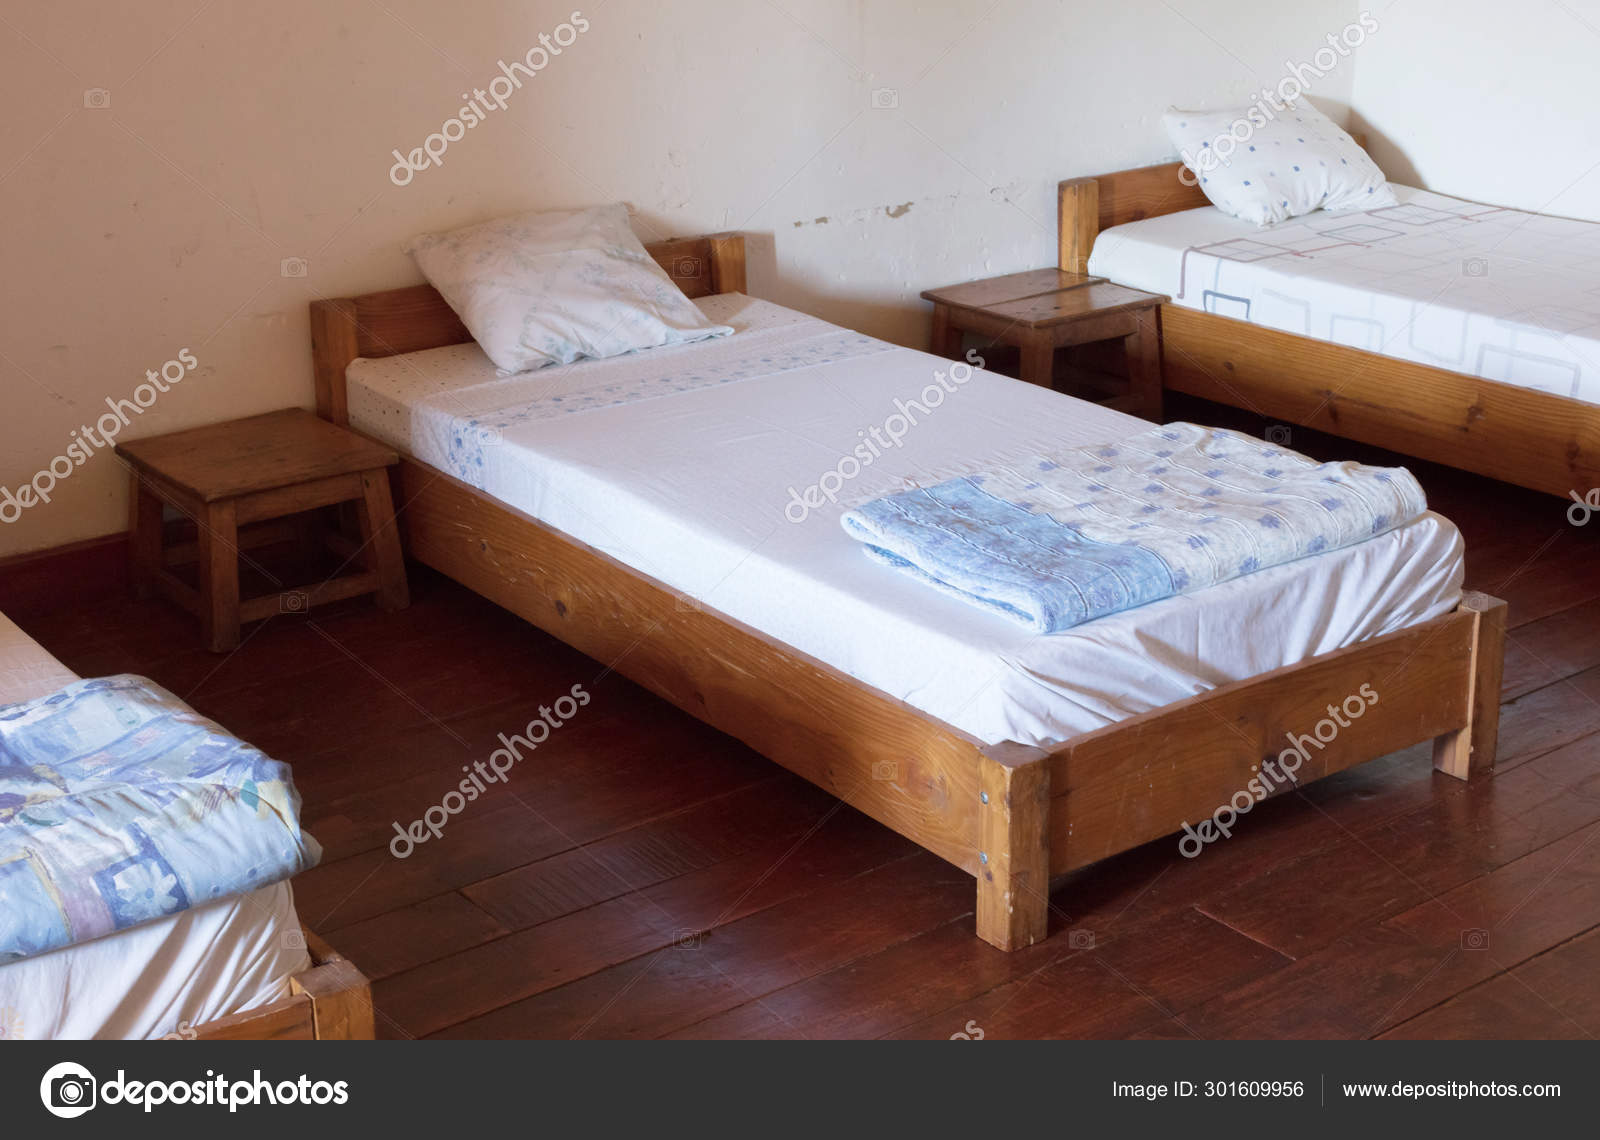 Old Wooden Bed Dormitory Stock Photo C Michaklootwijk 301609956